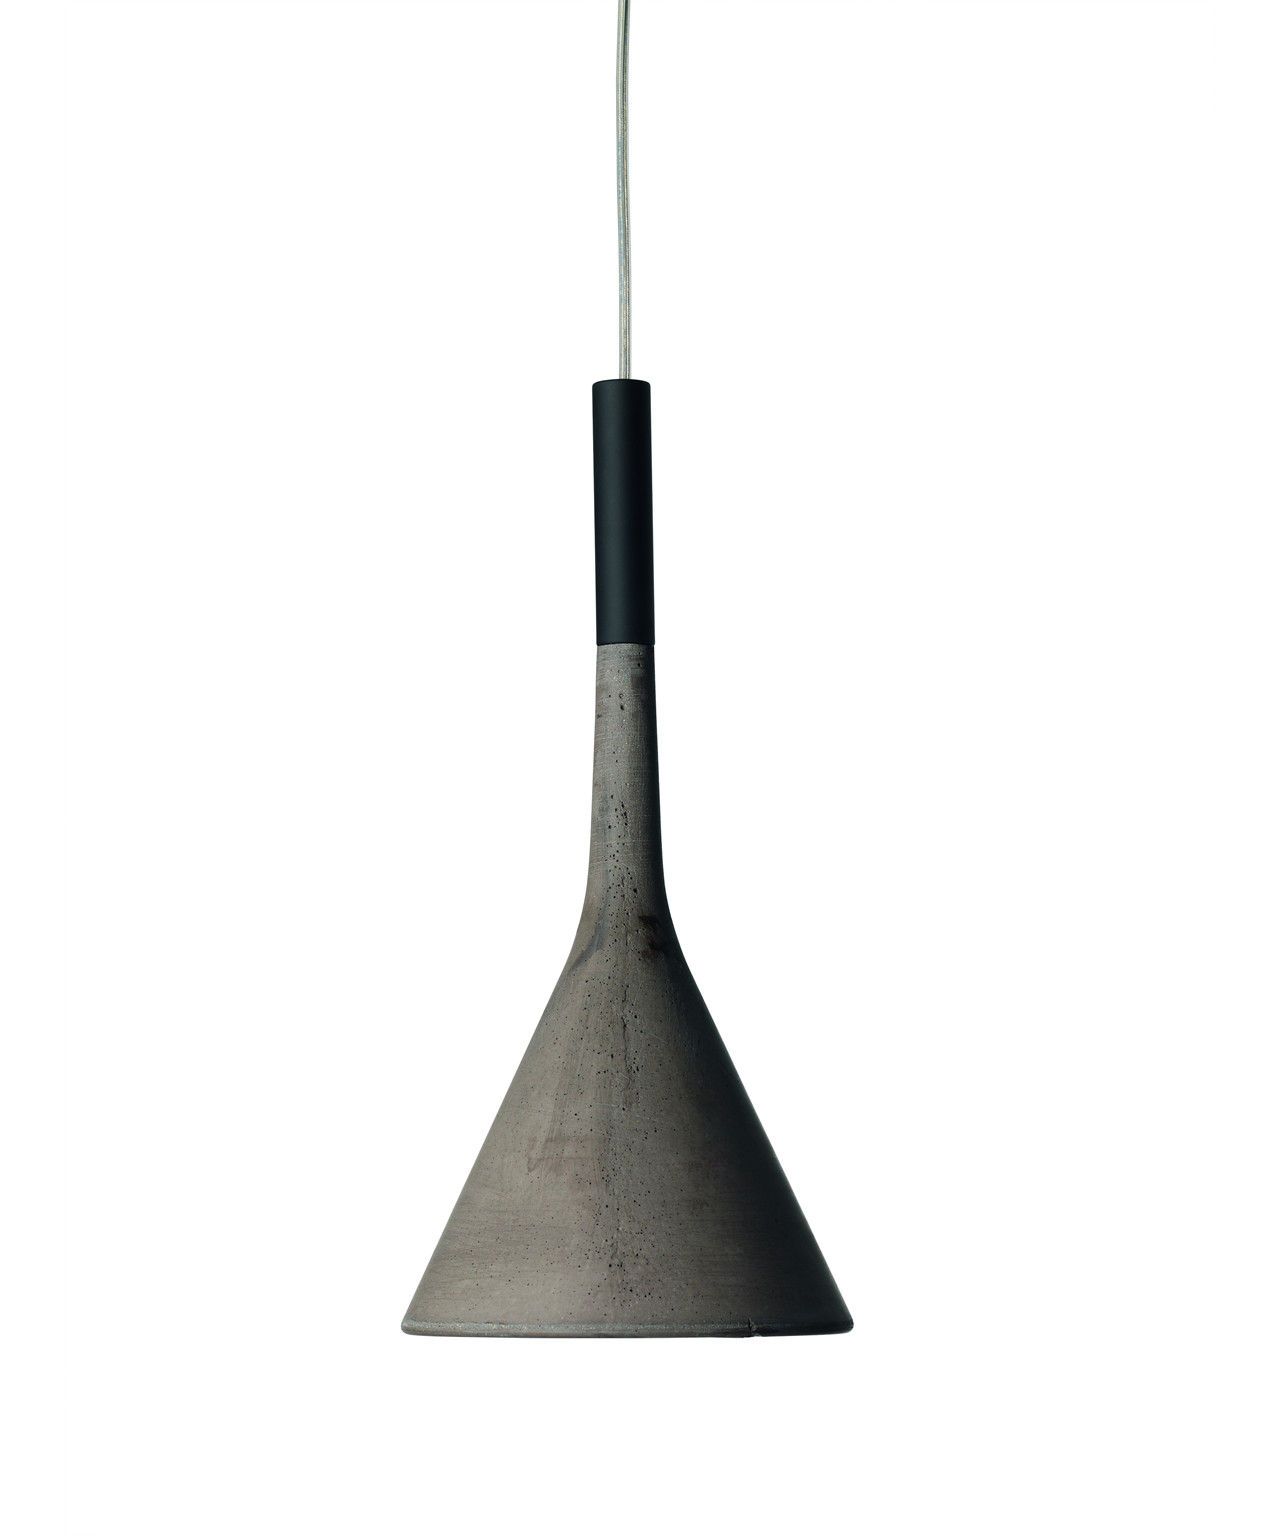 Image of   Aplomb LED Pendel Grå - Foscarini